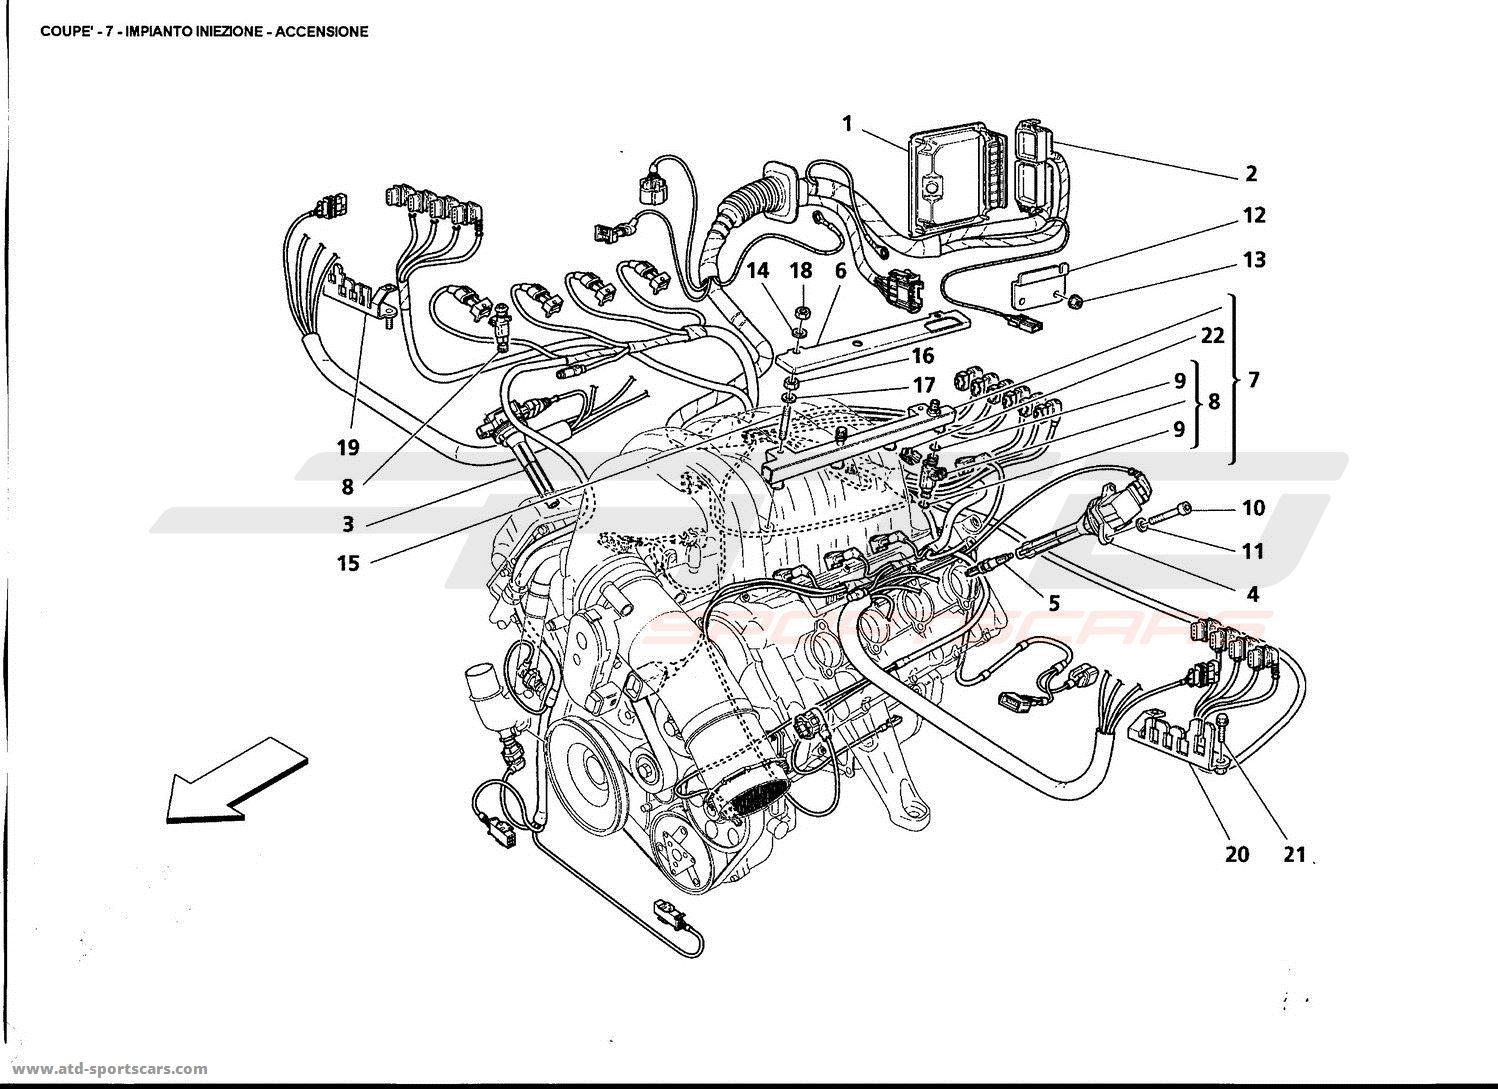 Wiring Diagram On Maserati Biturbo Wiring As Well Maserati Biturbo on